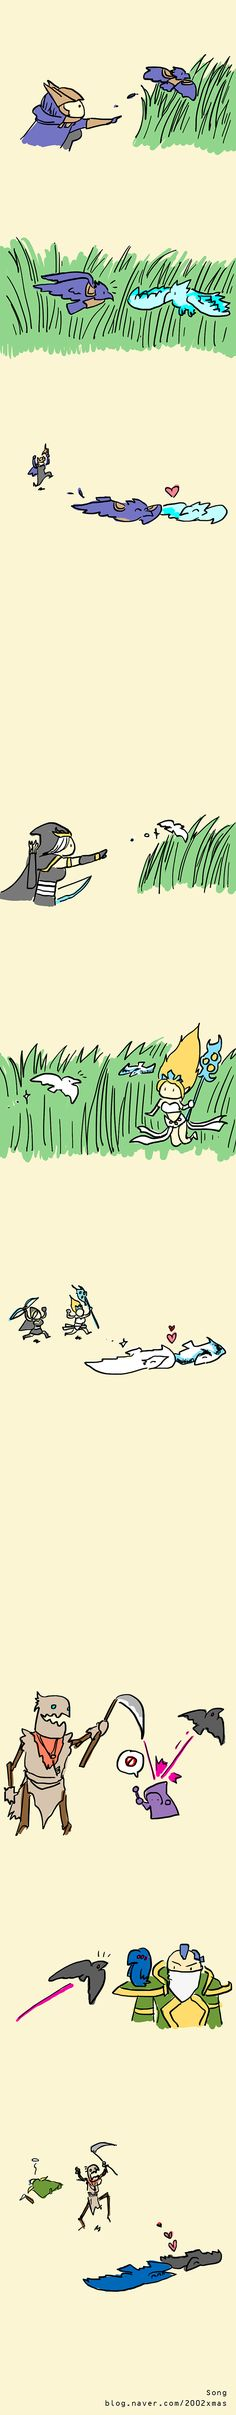 LOL - Birds by Sim-Song on deviantArt